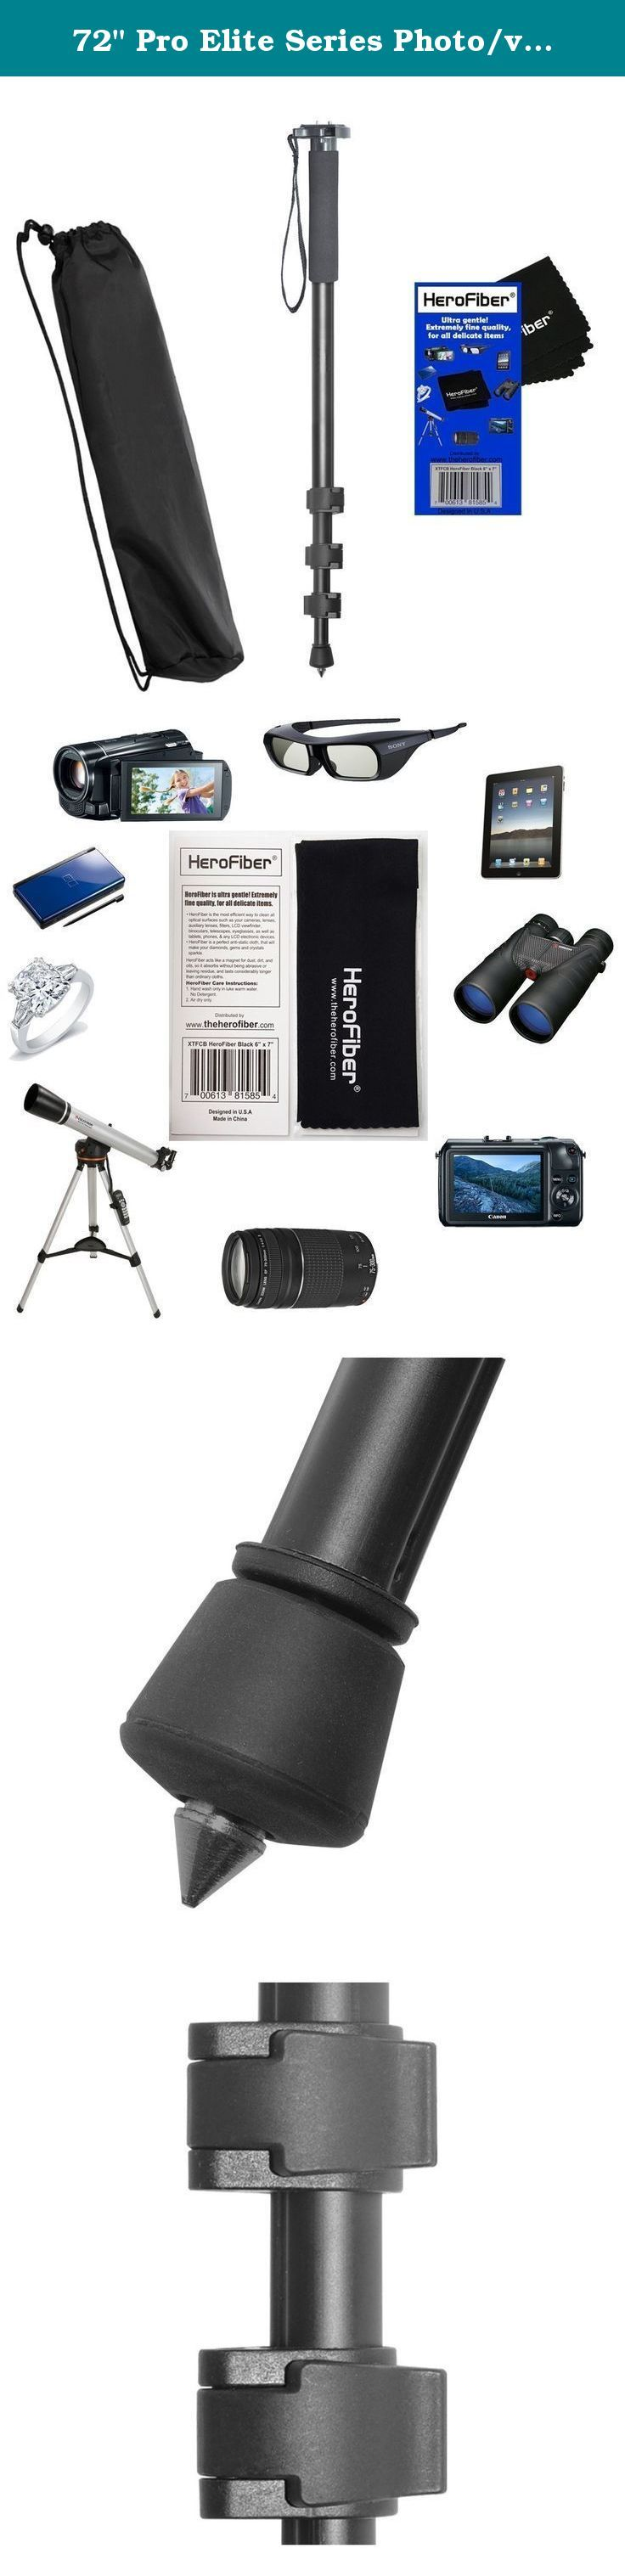 "72"" Pro Elite Series Photo/video Monopod & Deluxe Soft Carrying Case for Canon EOS M Compact Systems Camera, EOS Rebel T1i, T2i, T3, T3i, T4i, T5i, & SL1 (100D, 550D, 600D, 650D, 700D and 1100D) Digital SLR Cameras w/ Herofiber® Ultra Gentle Cleaning Cloth. This 72"" Monopod W/3-Way Panhead extends up to 72"" (1.82 m), supports up to 7 lbs (9.9 kg), and weighs just 3.83 lbs (1.74 kg). It features a quick release plate. This Monopod is designed to support digital still cameras, lenses..."